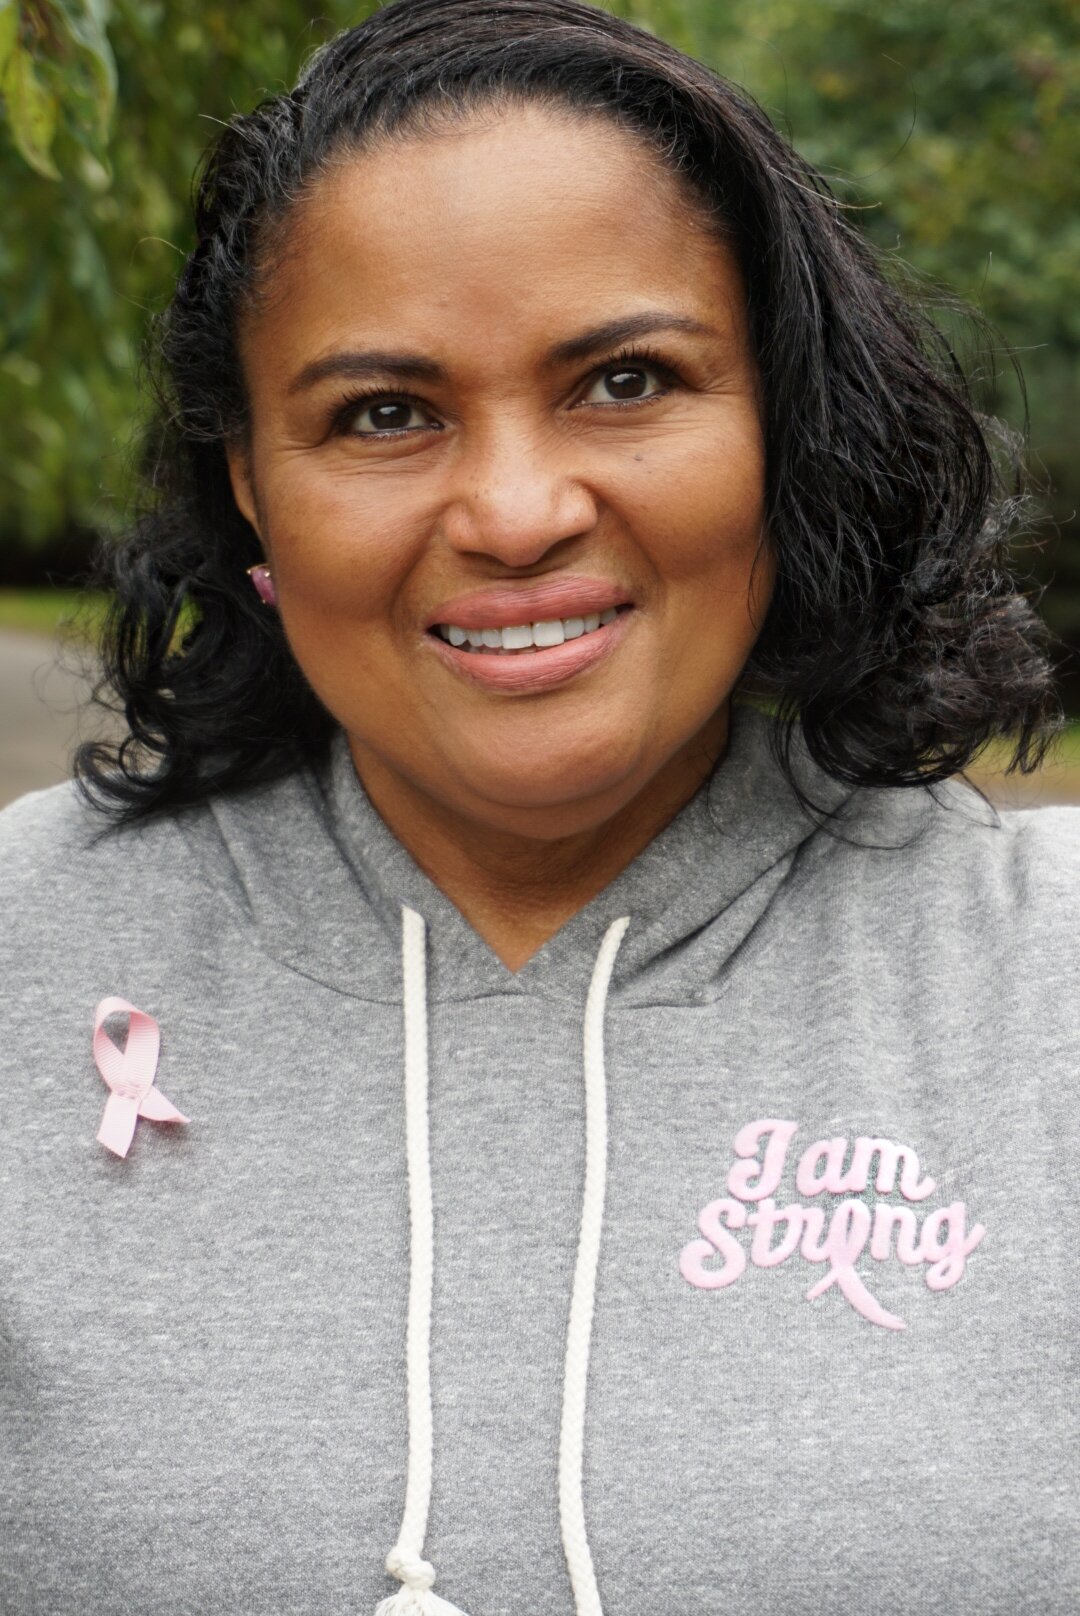 I Am Strong; Breast Cancer Awareness with Lane Bryant